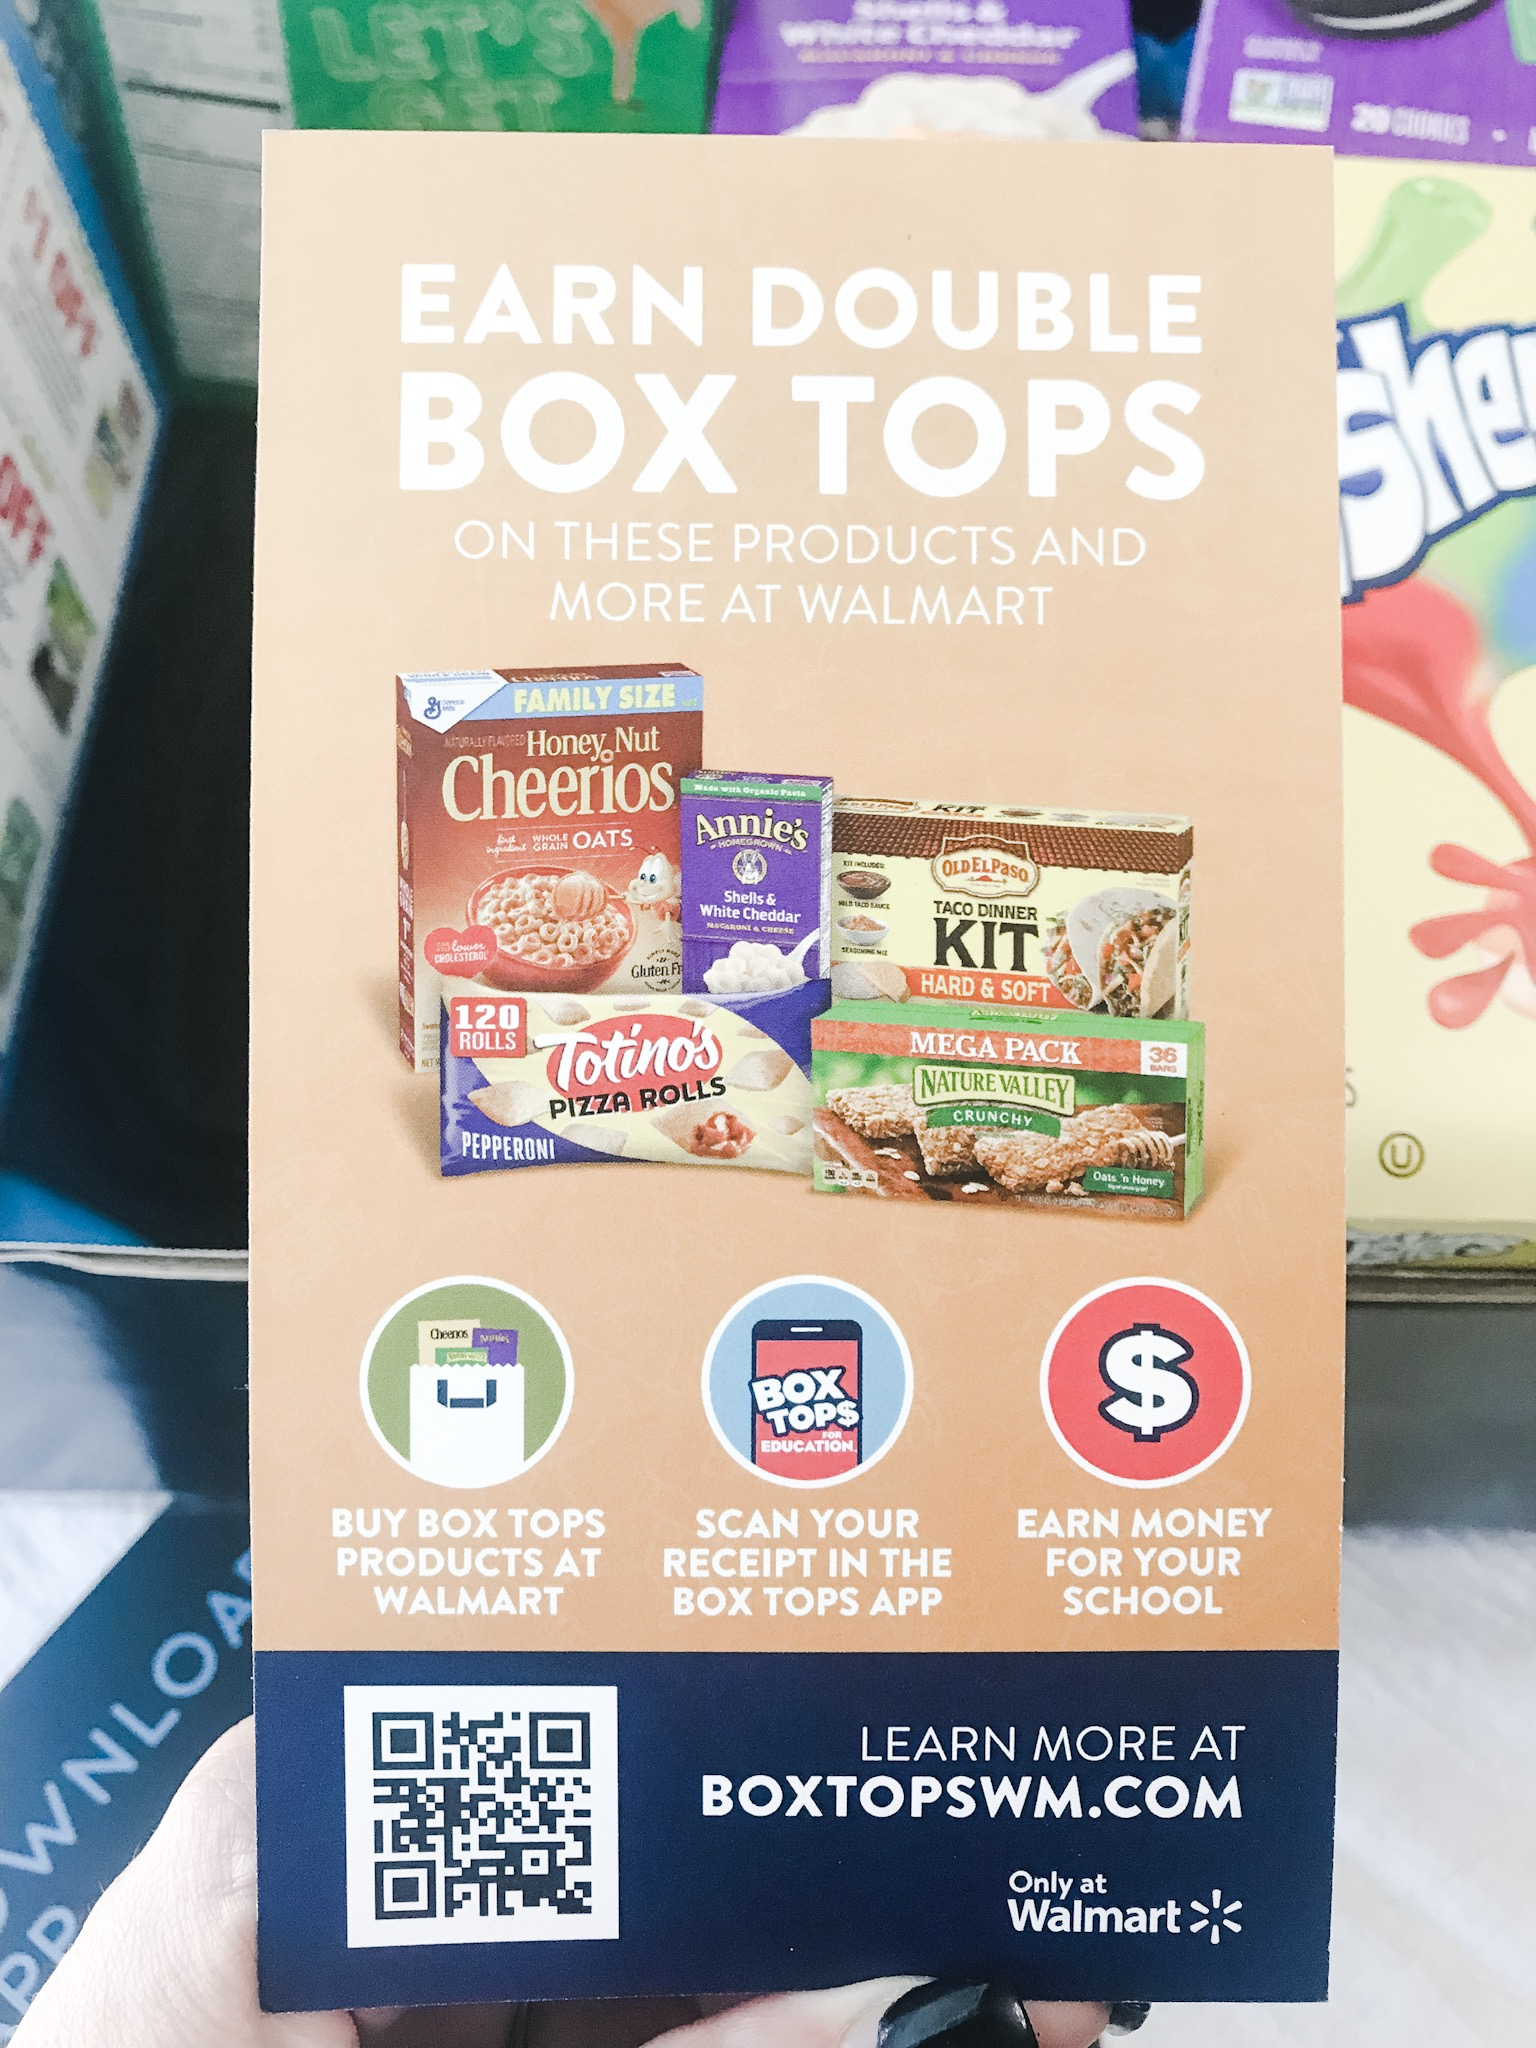 box tops for education has gone digital